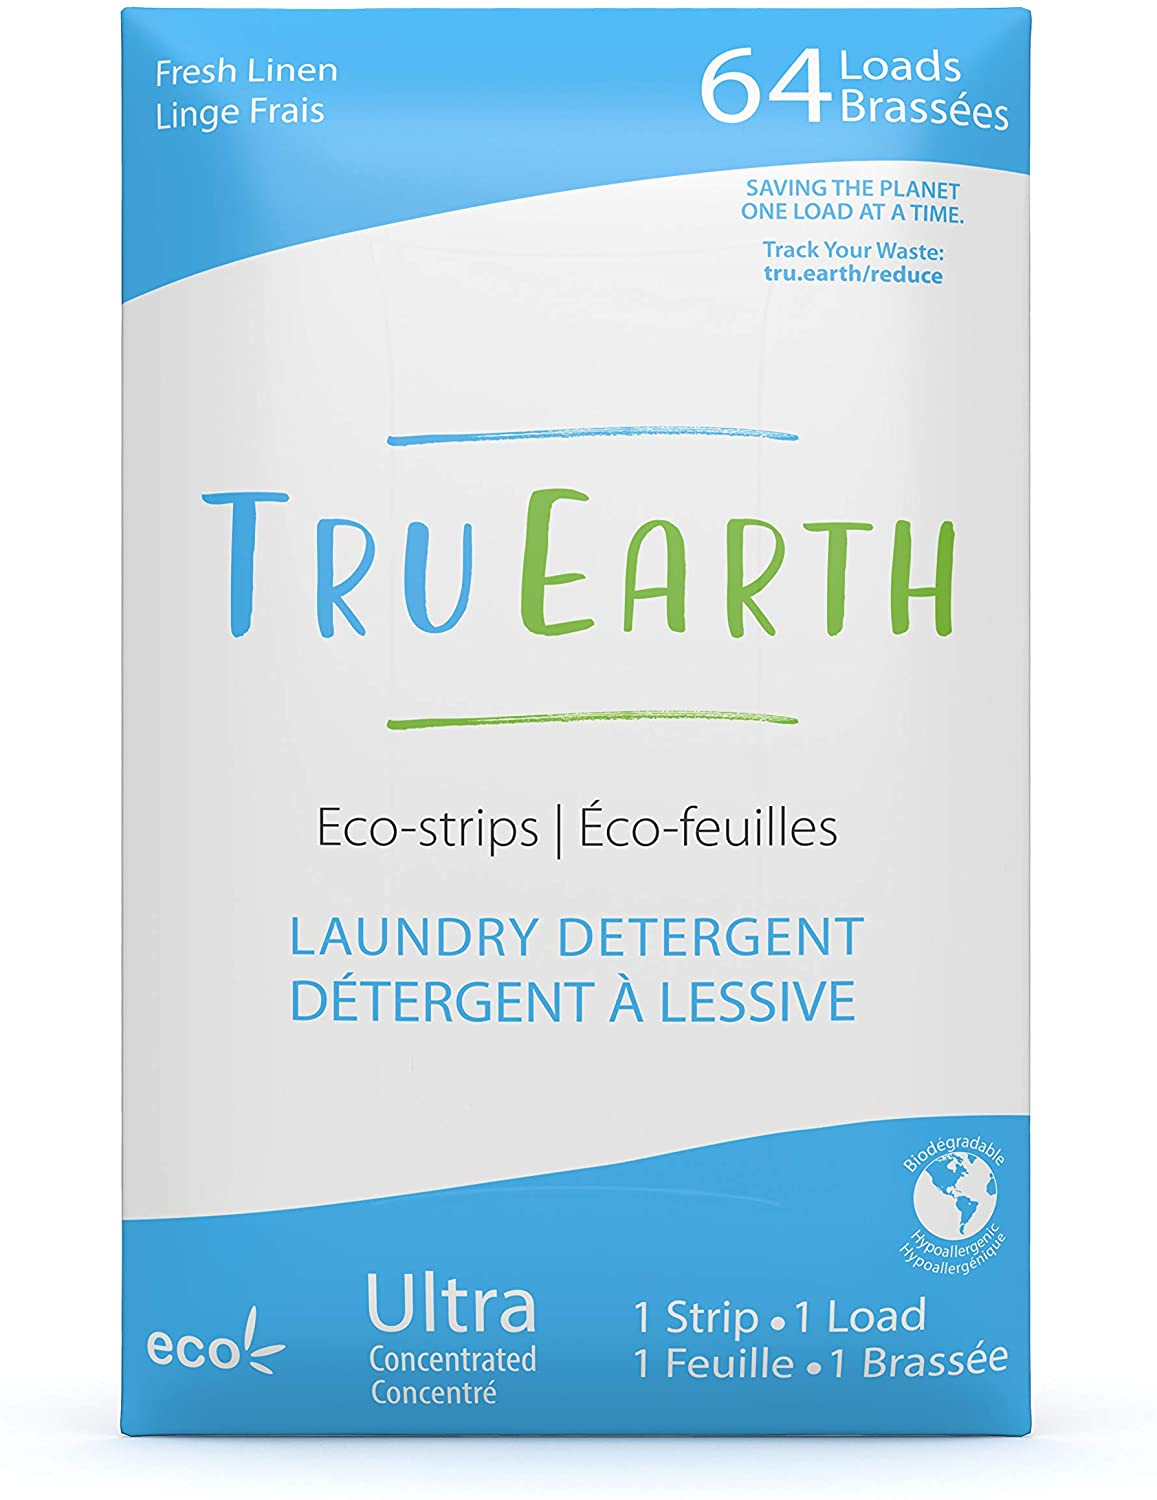 Tru Earth Eco-Strips Laundry Detergent (Fresh Linen Scent, 64 Loads) - Eco-Friendly Ultra Concentrated Compostable & Biodegradable Plastic-Free Laundry Detergent Sheets